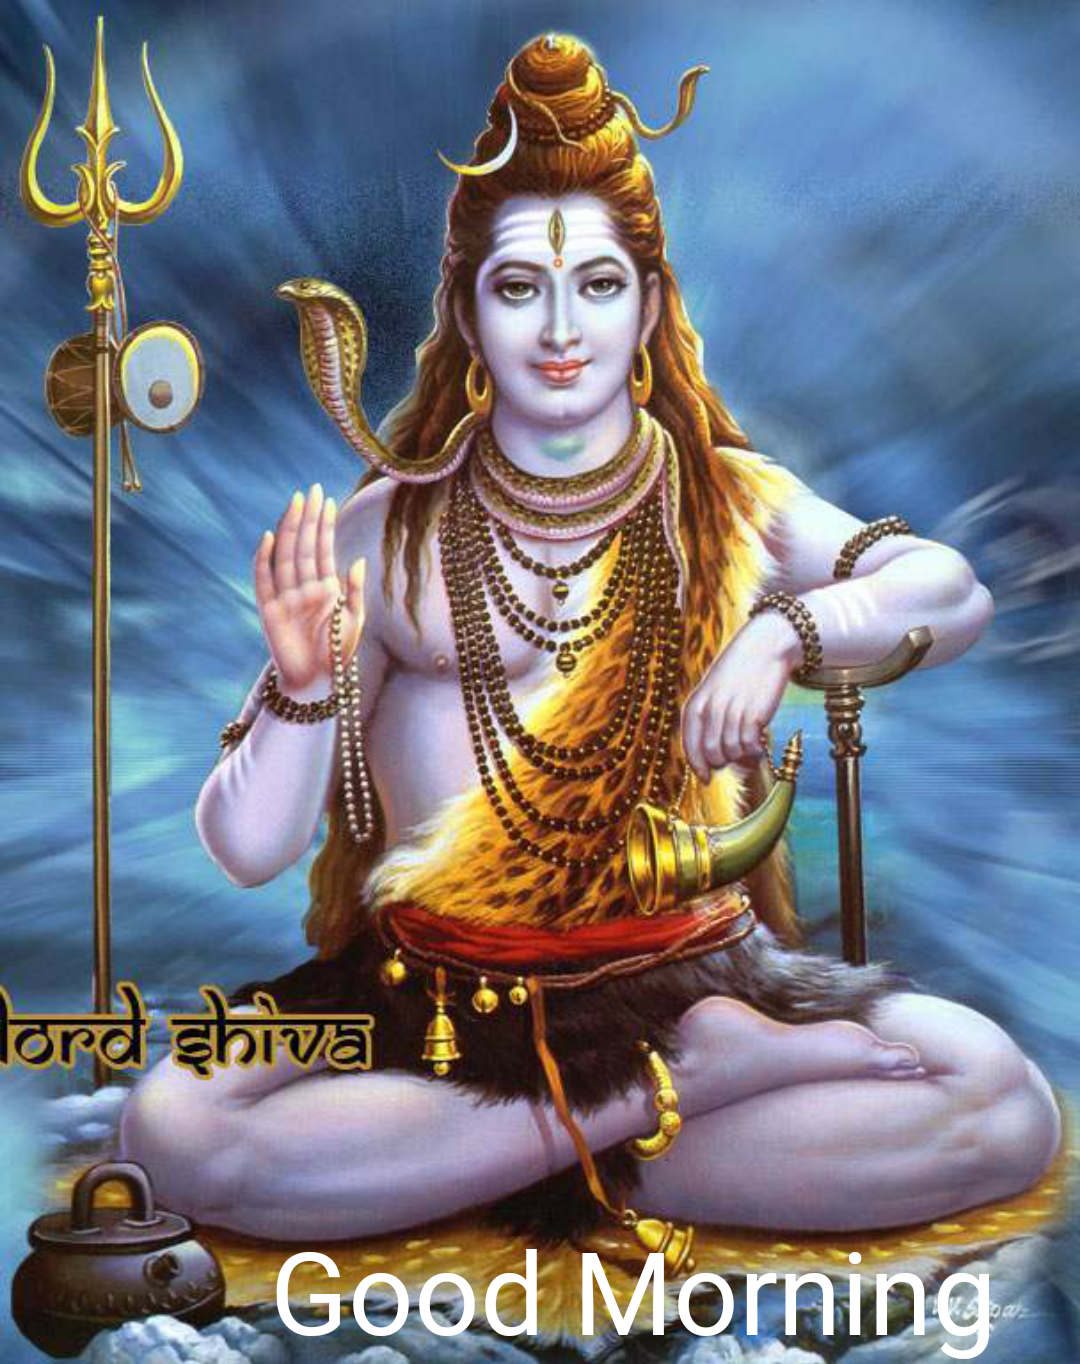 Good Morning Wishes Hindu Lord Shiva Images For Gud Whatsapp Fb